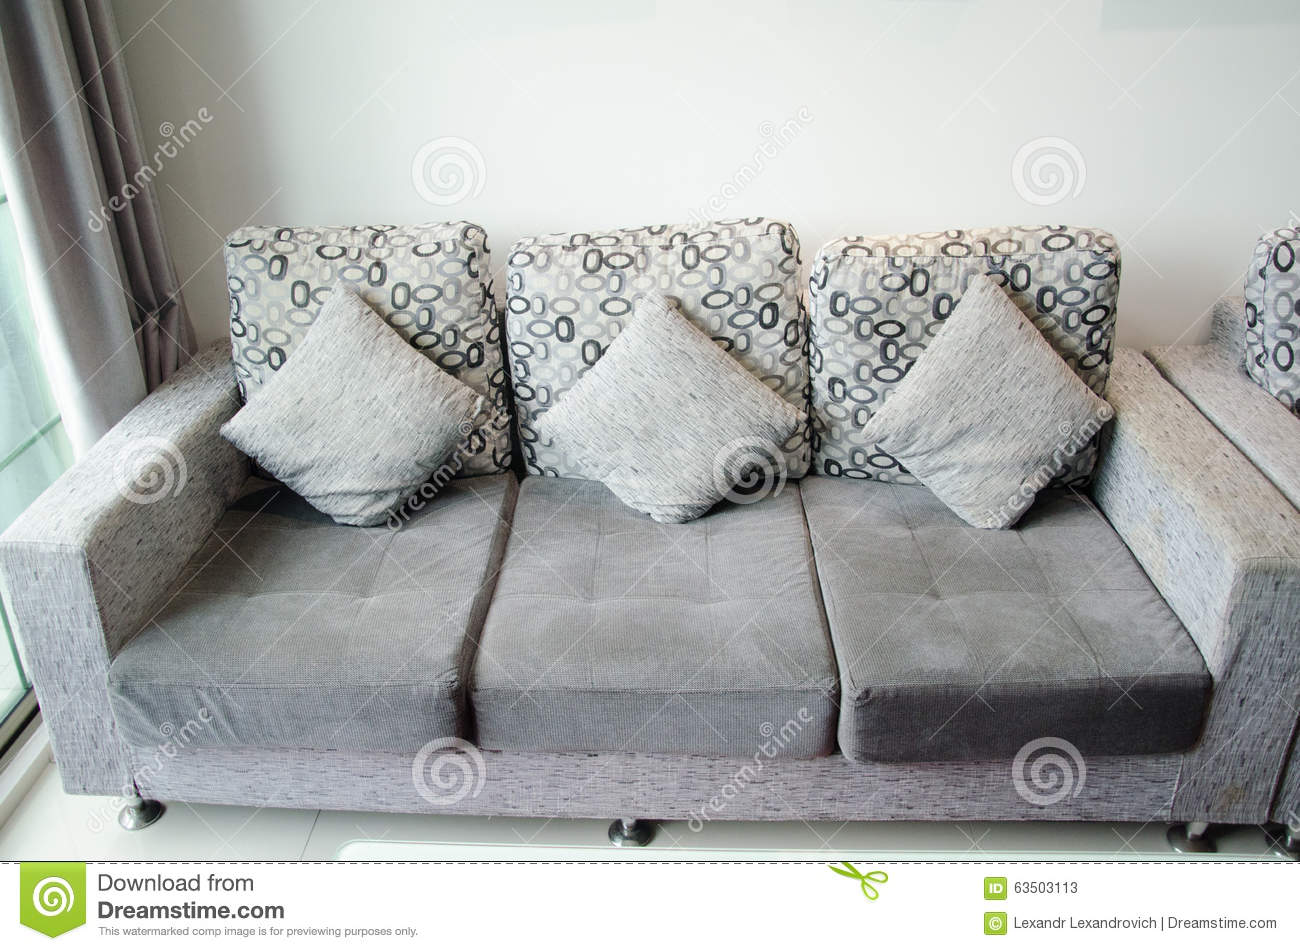 Sofa With Cushions In Living Room Stock Photo Image 63503113